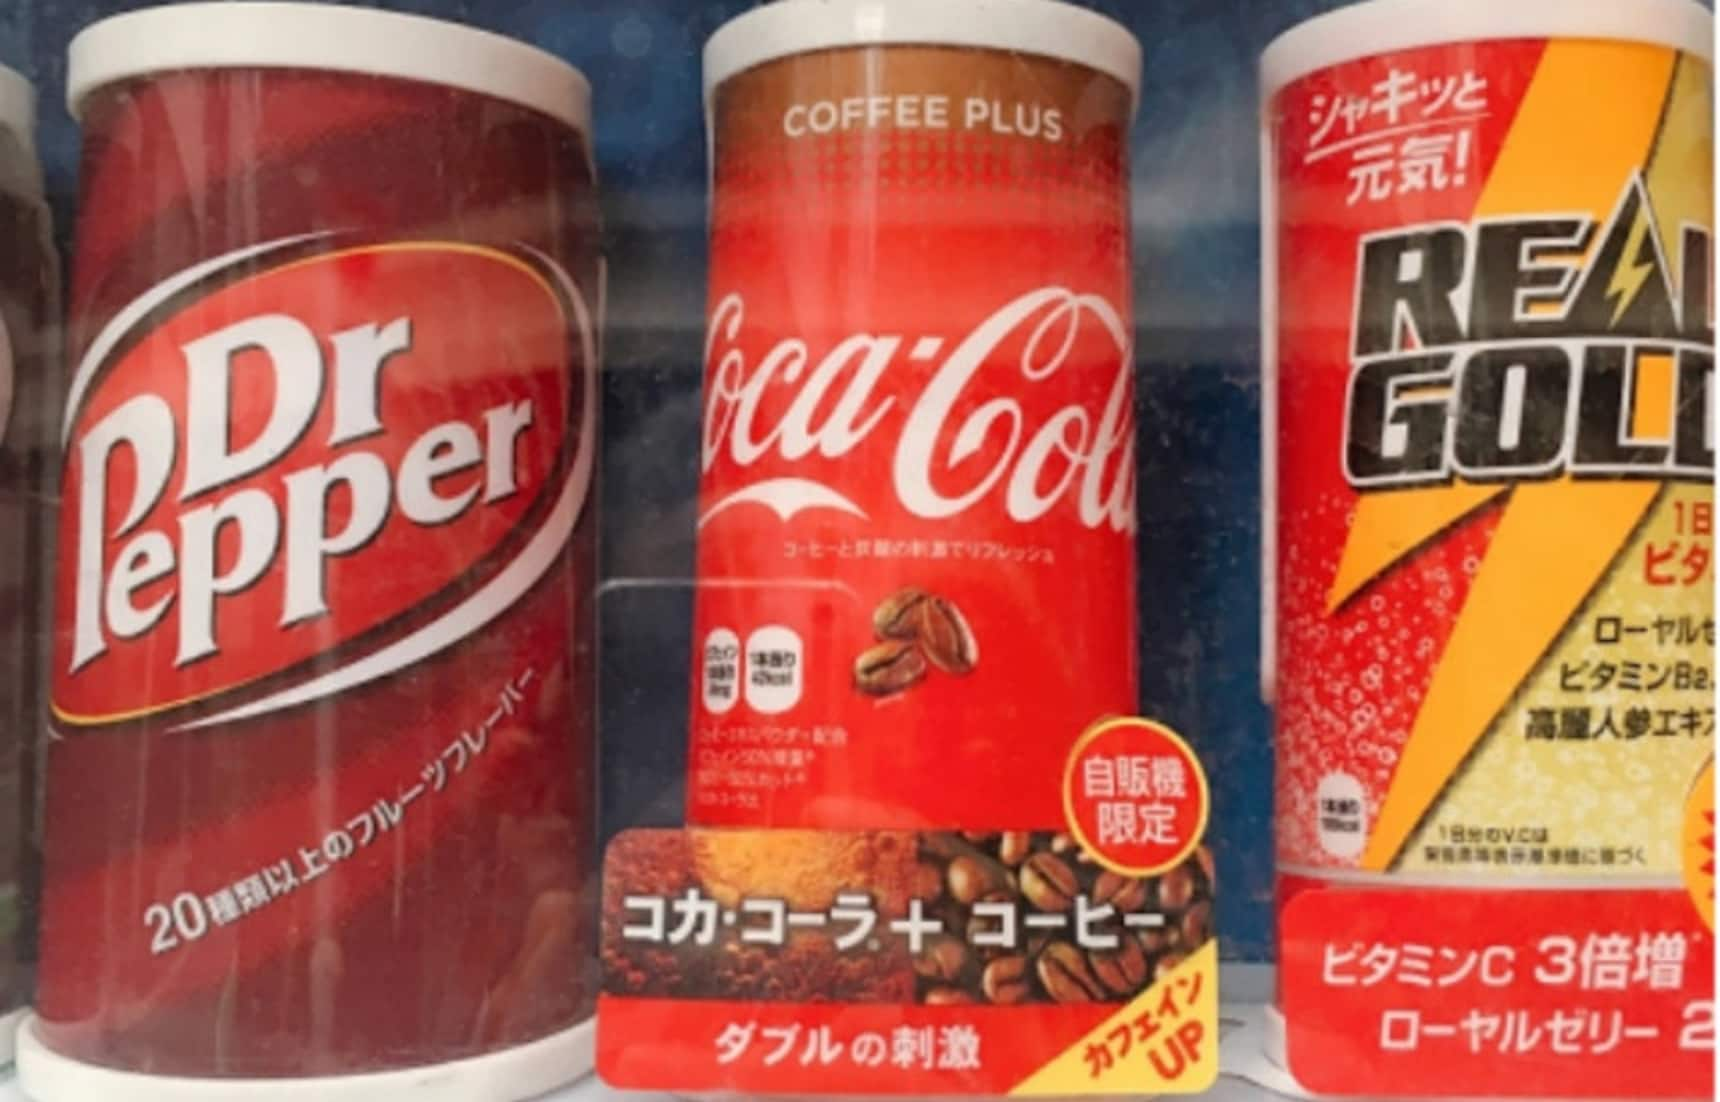 Craving Caffeine? Try Coca-Cola Coffee Plus!